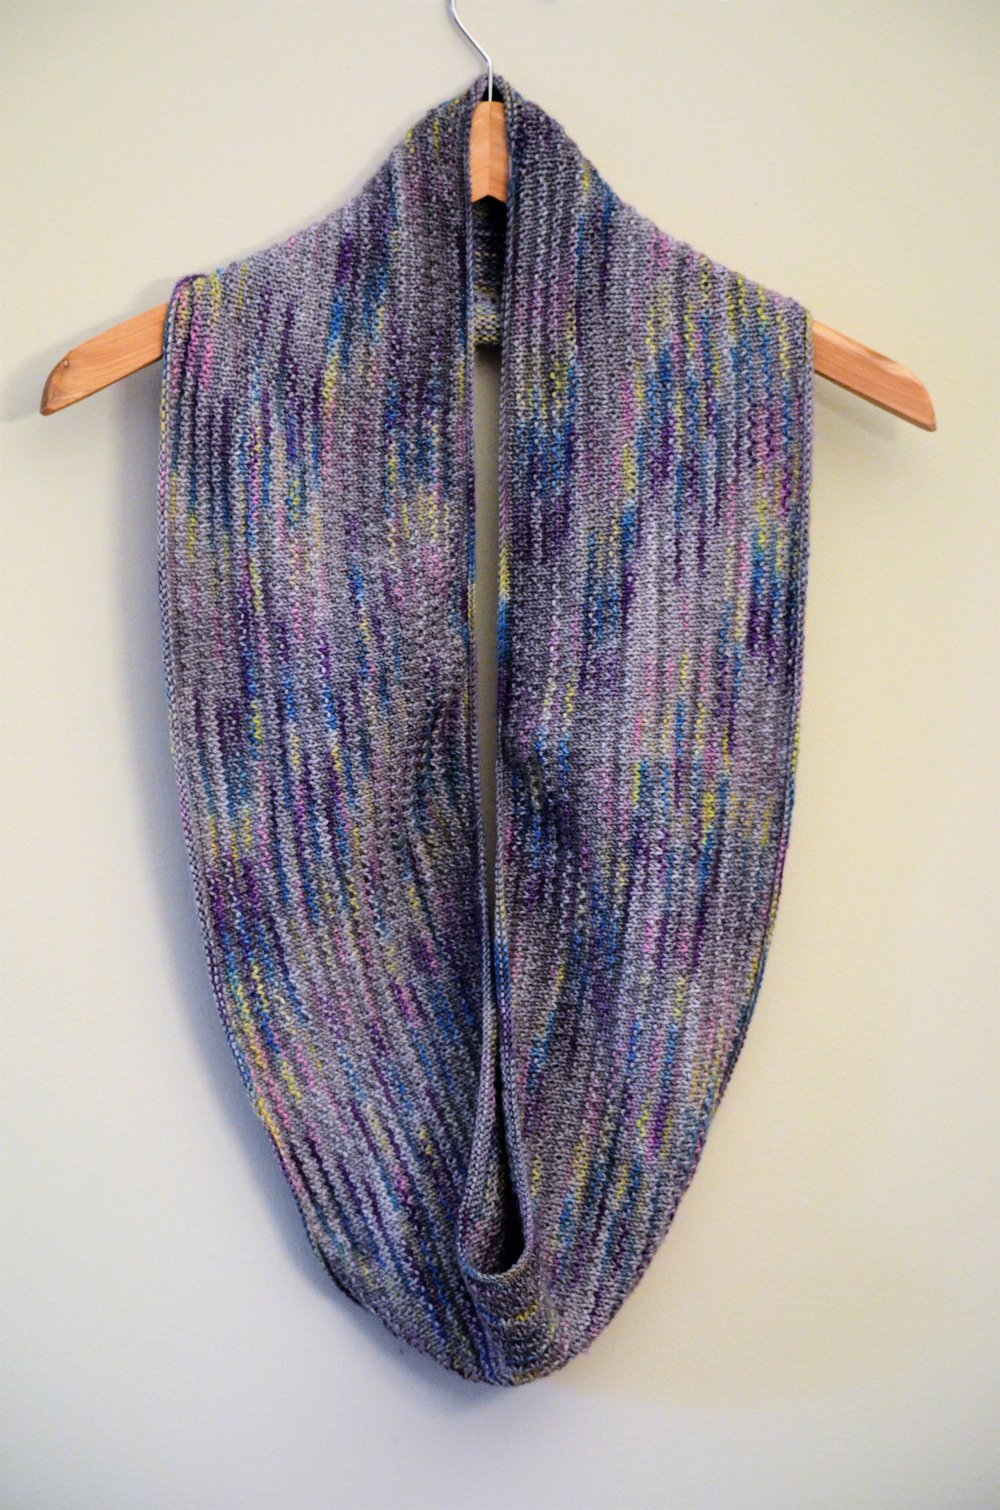 EASY KNIT Capitol Hill Cowl Scarf Pattern / warporweft.com